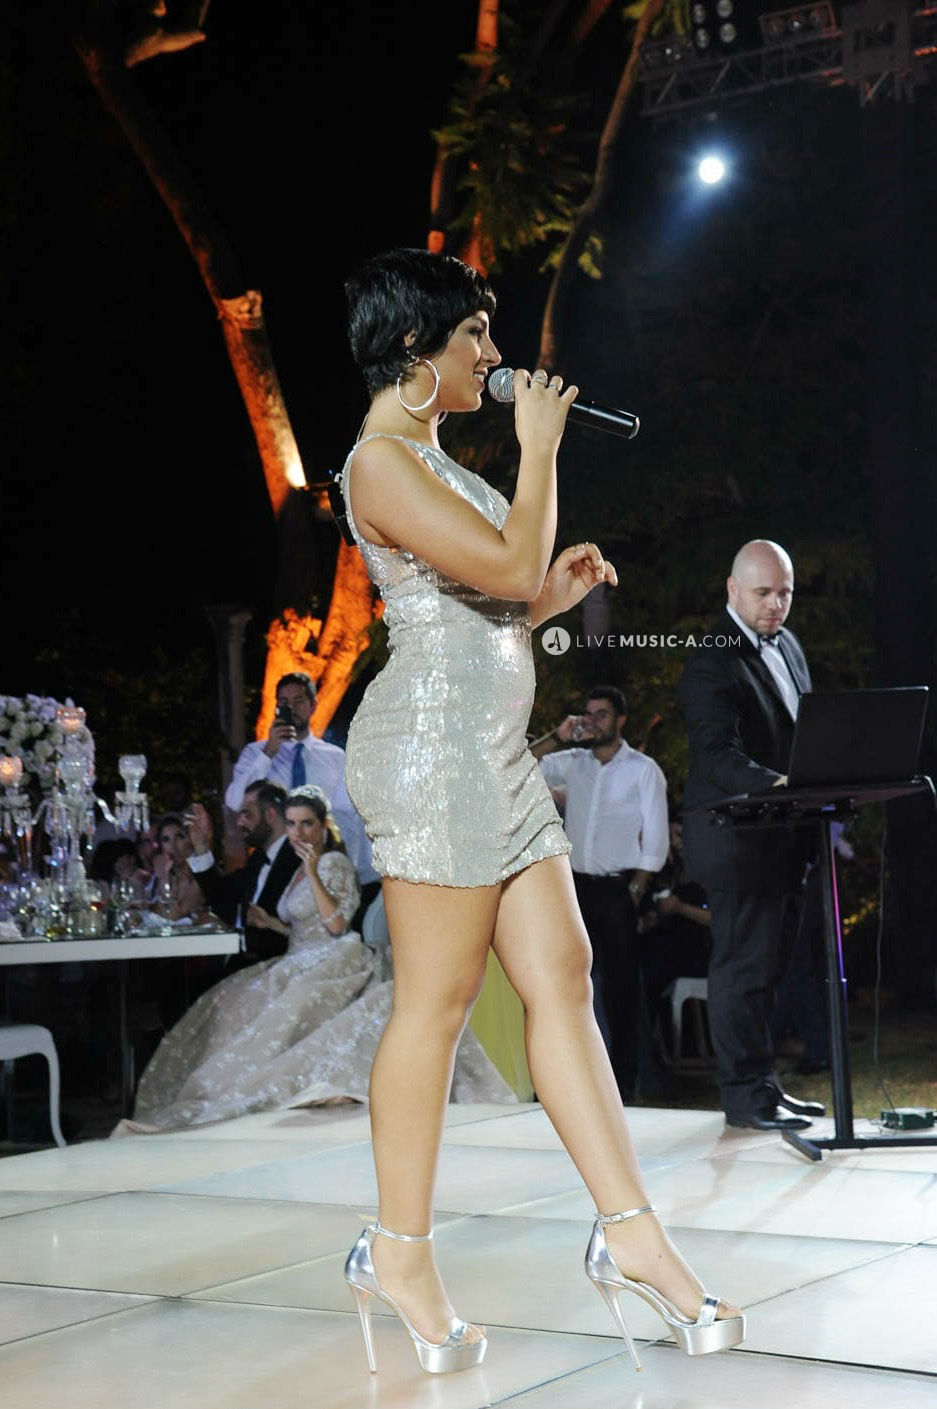 Wedding performance at Sursock Palace - Sursock